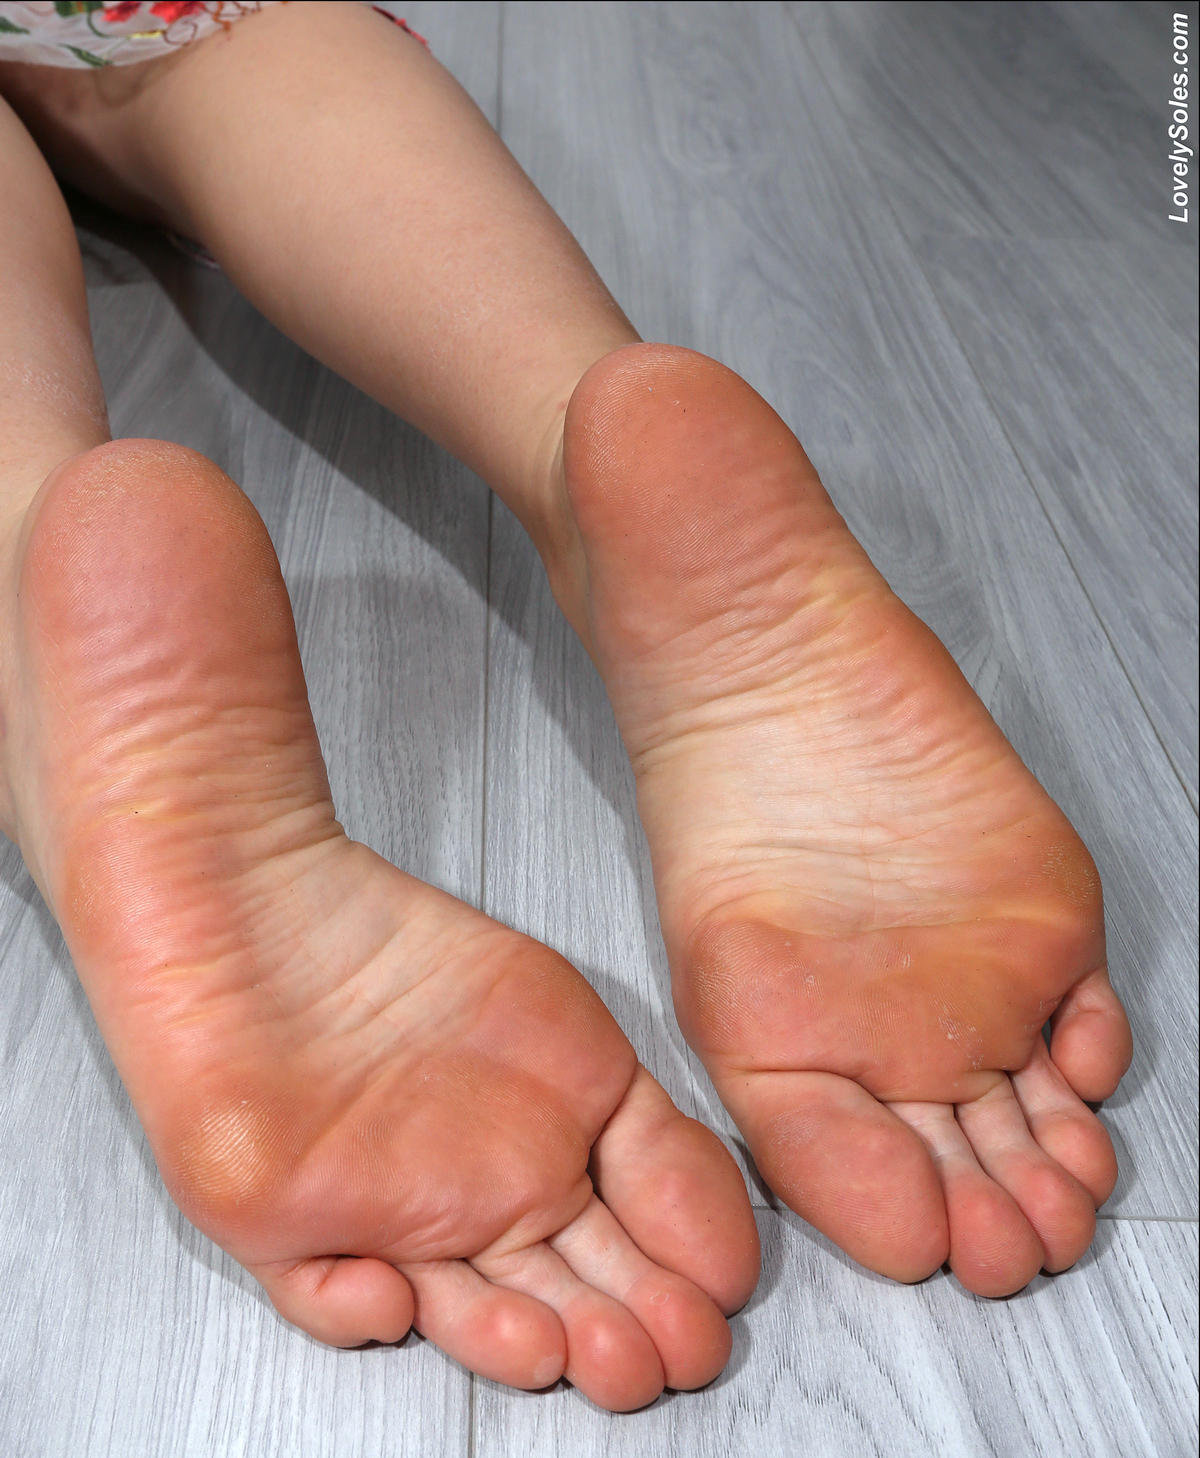 a girl named Hailee showing her feet